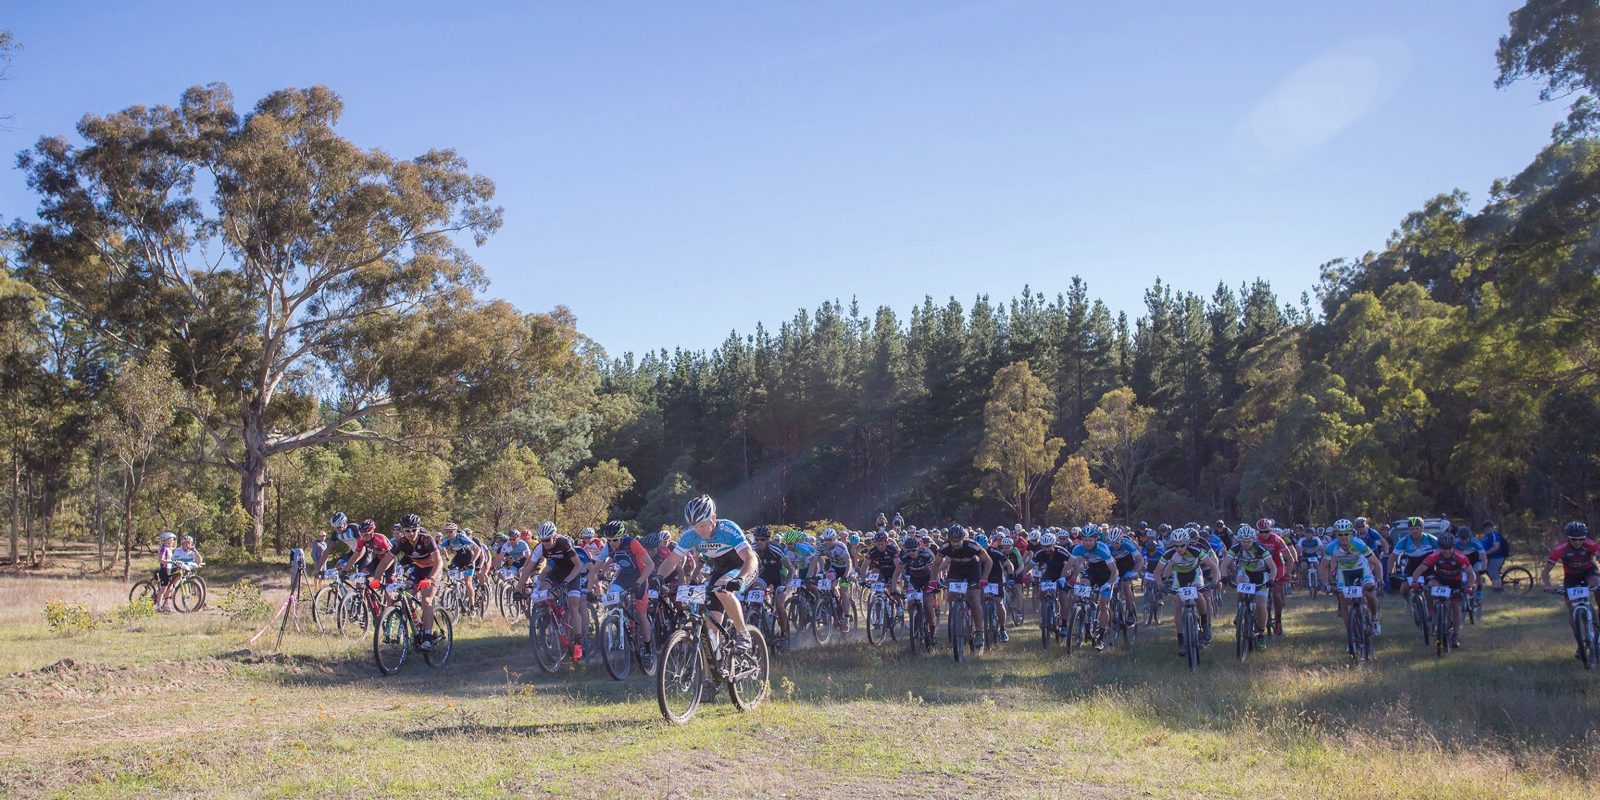 Mountain bike riders lined up for the race start